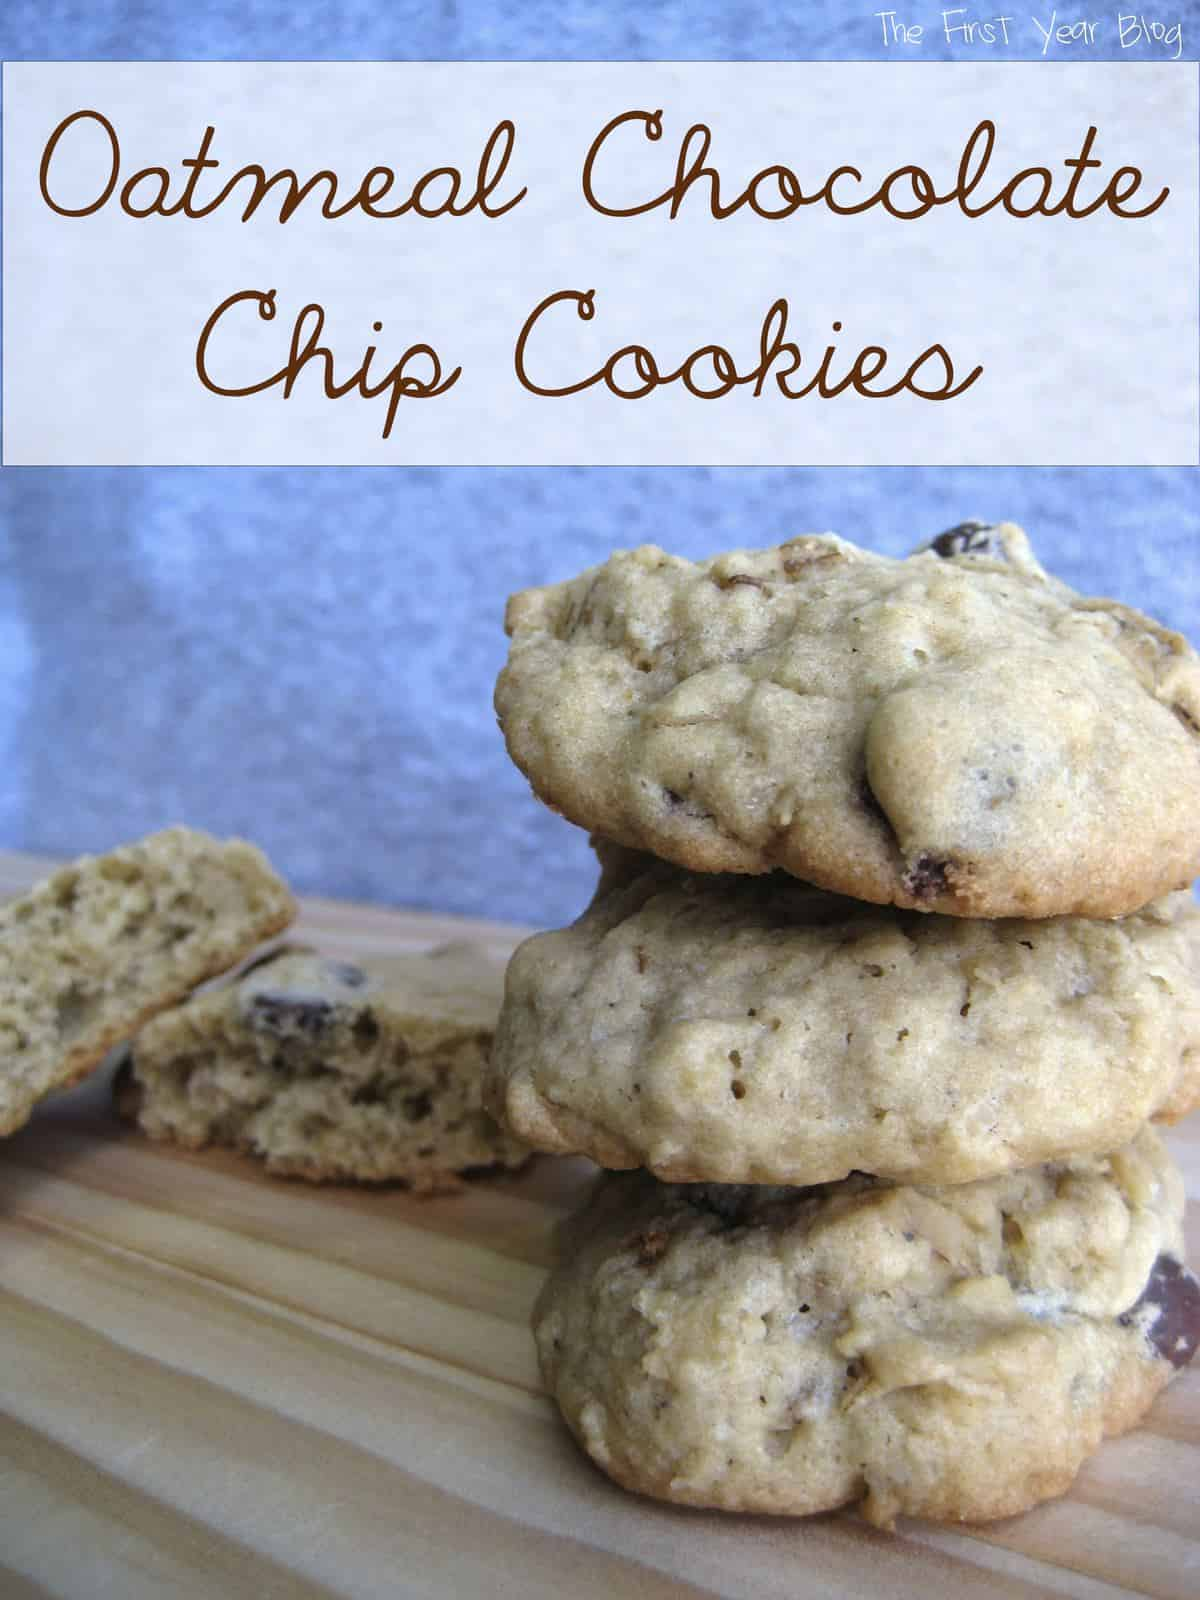 Oatmeal Chocolate Chip Cookie Recipes — Dishmaps